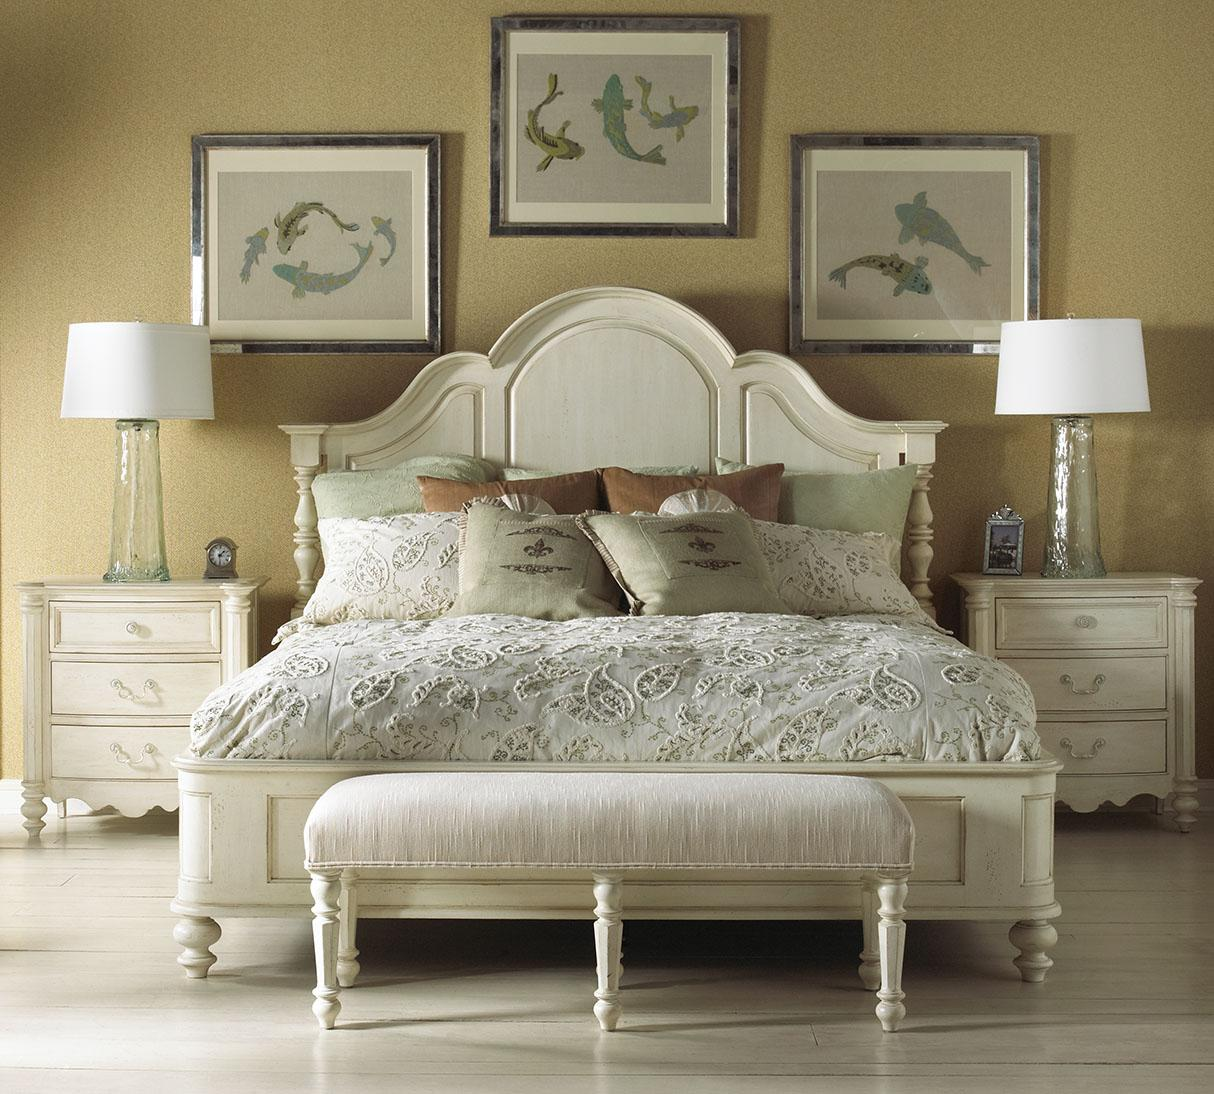 summer home california king bedroom group by fine furniture design wolf furniture